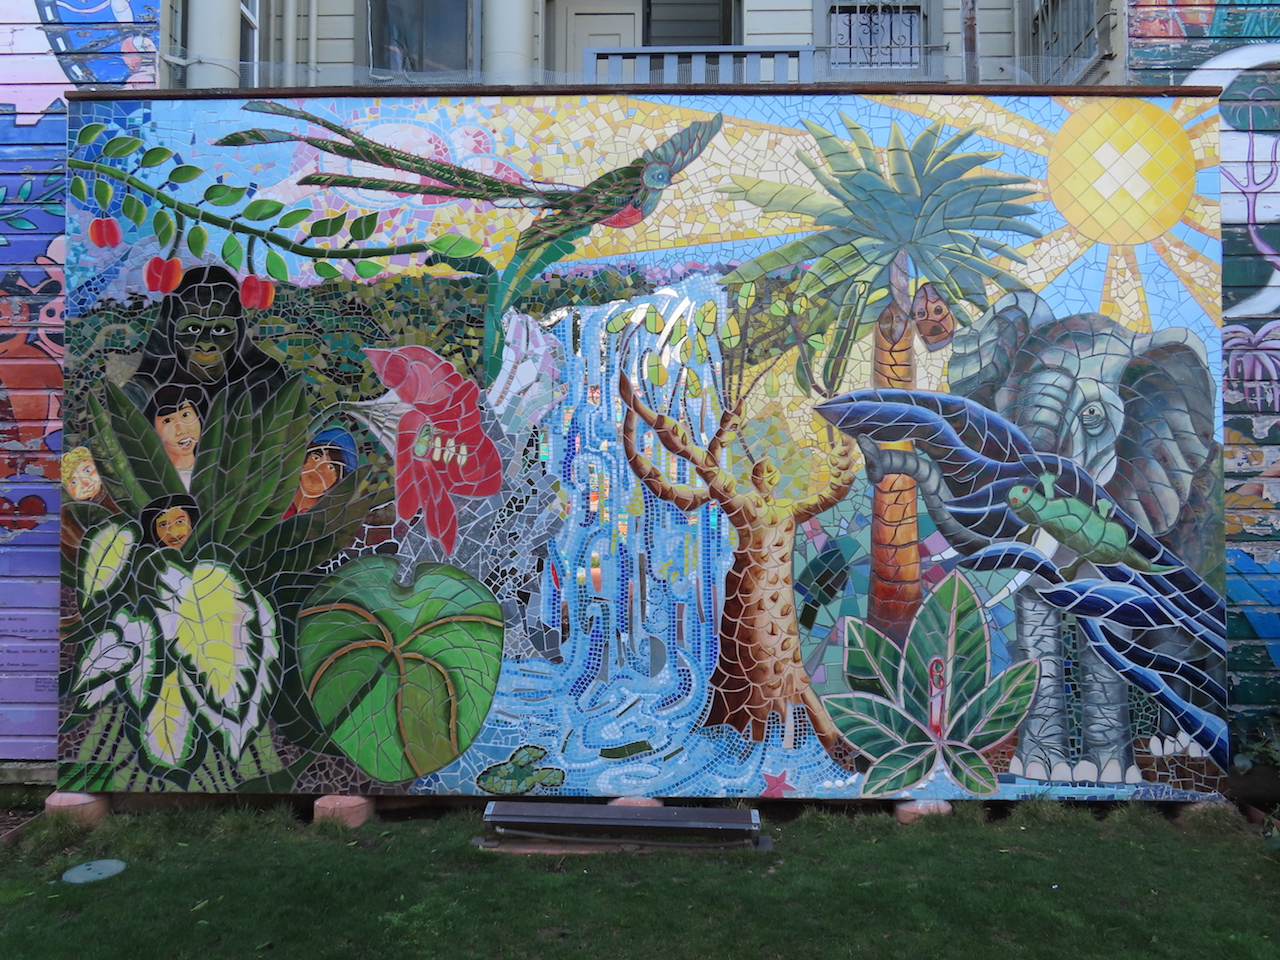 more mosaic sites in san francisco